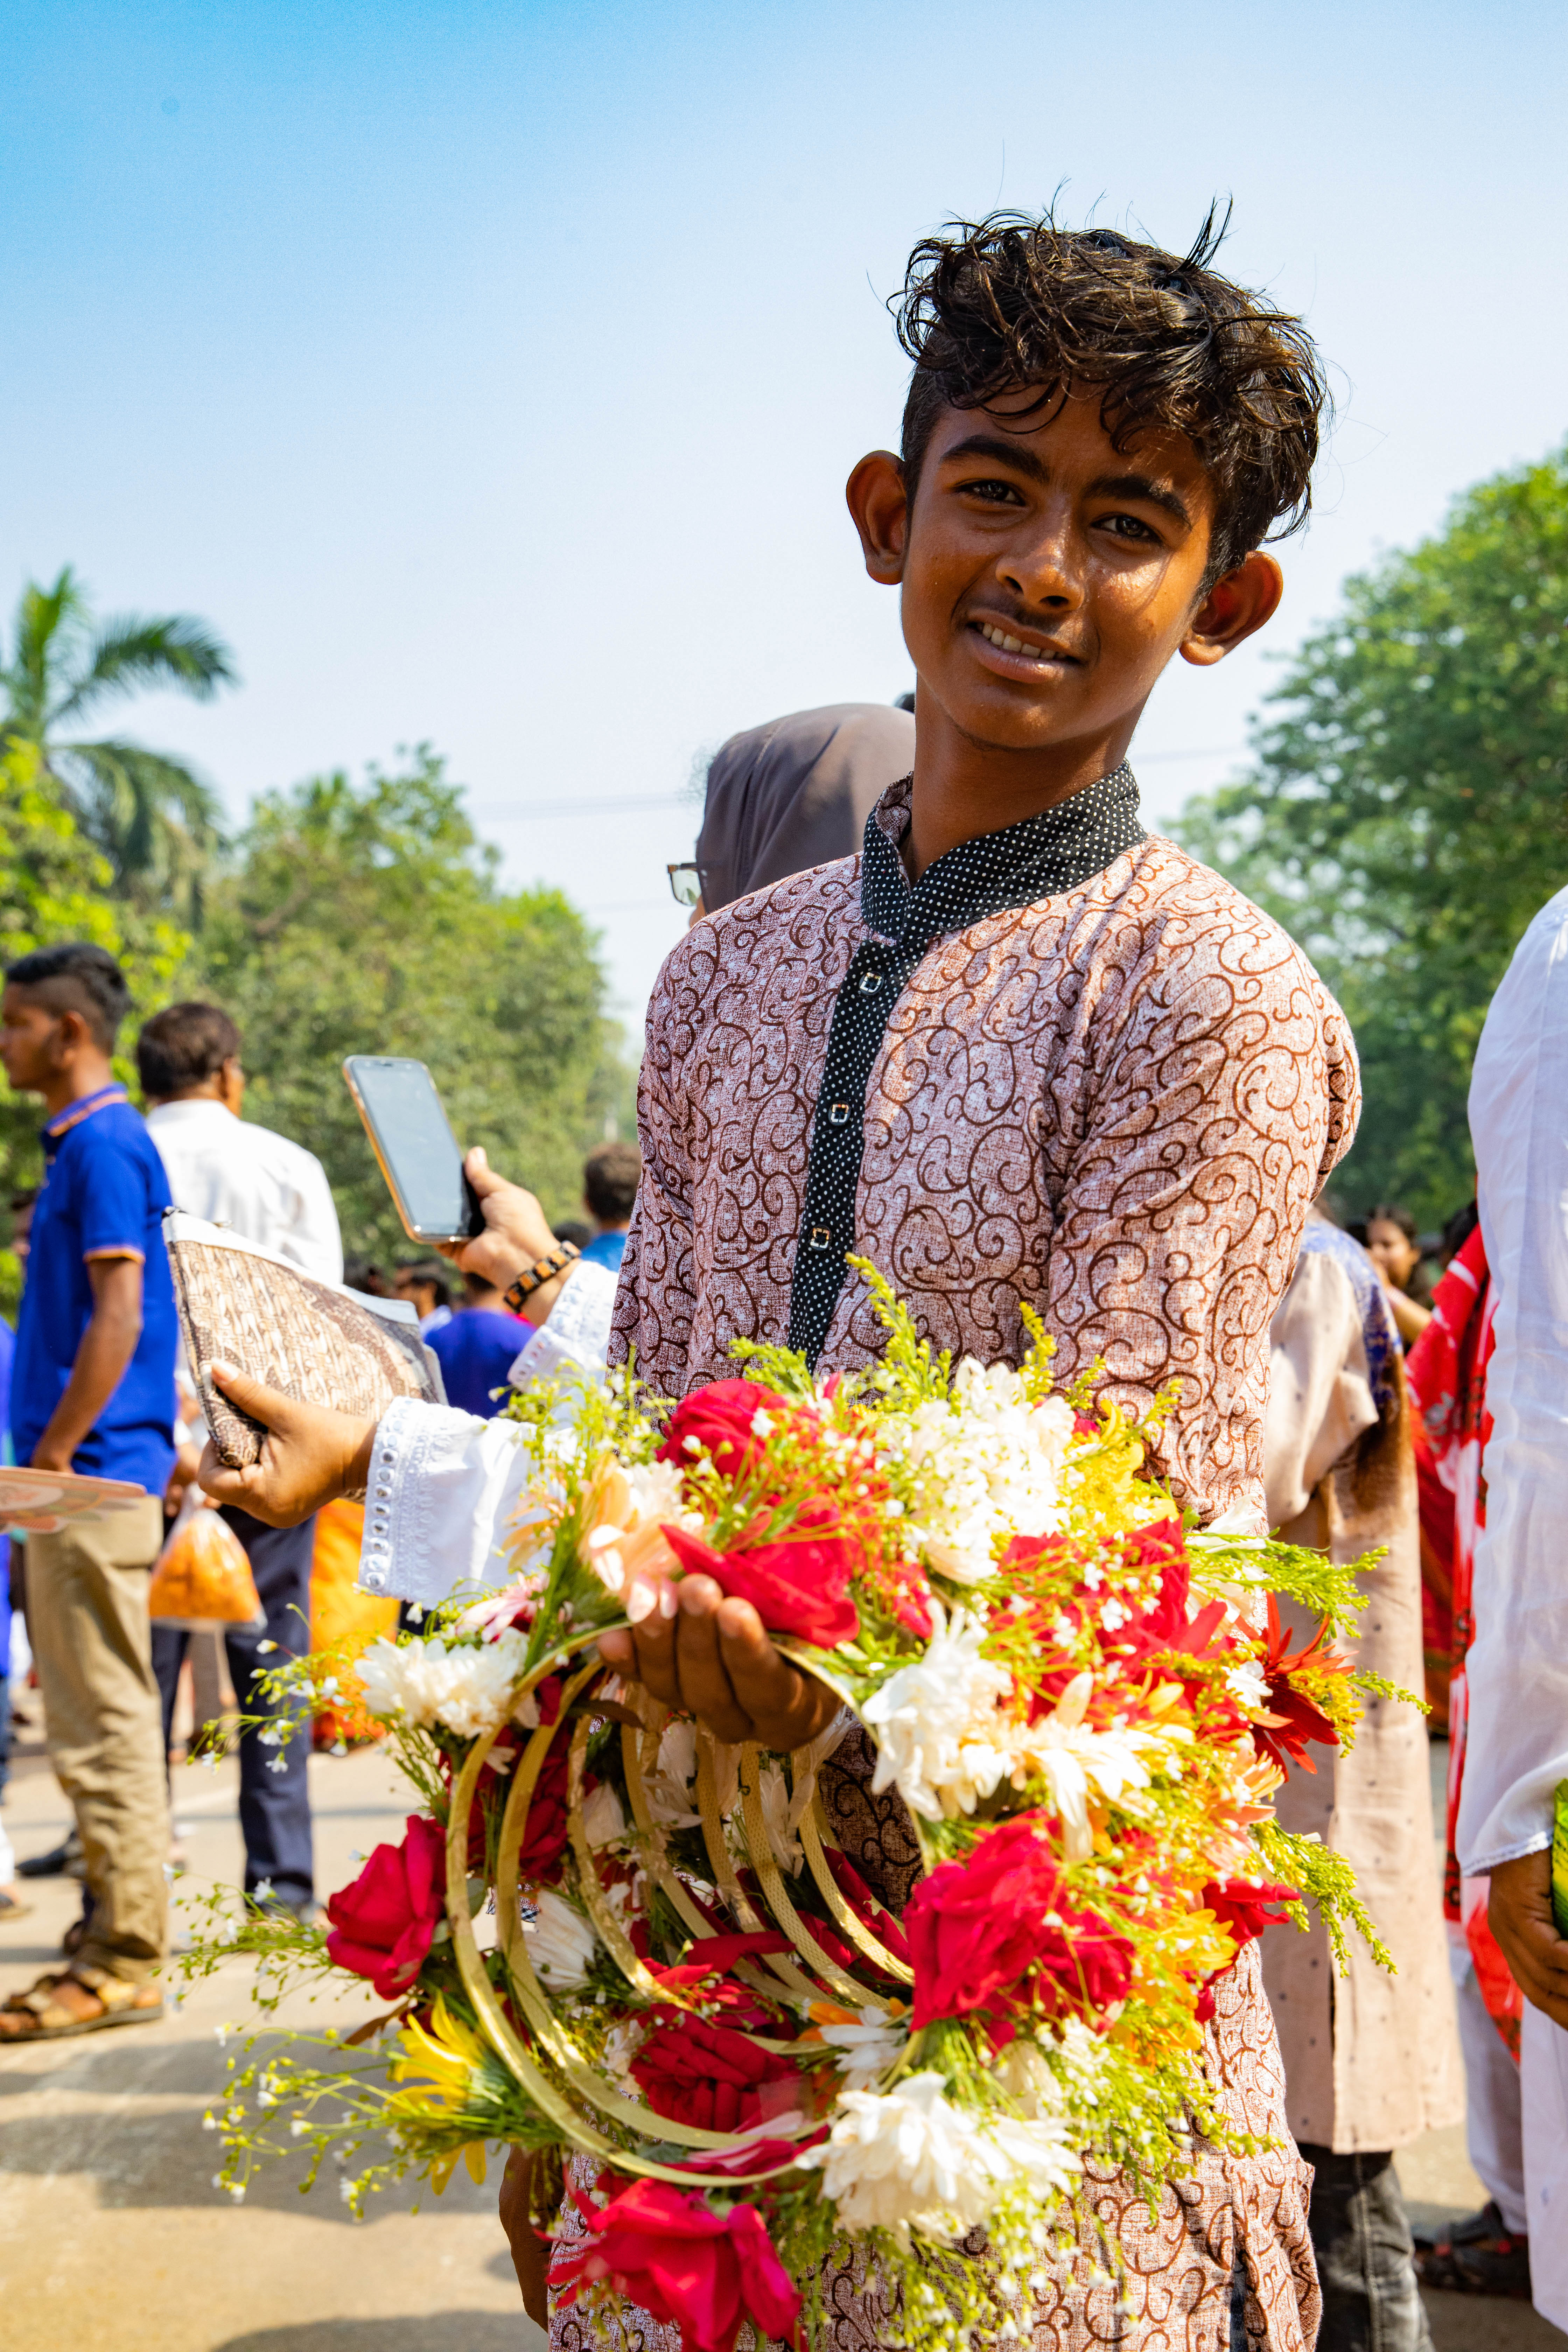 Seller Dhaka Flower Crowns - Bengali New Year - Shuvo Noboborsho